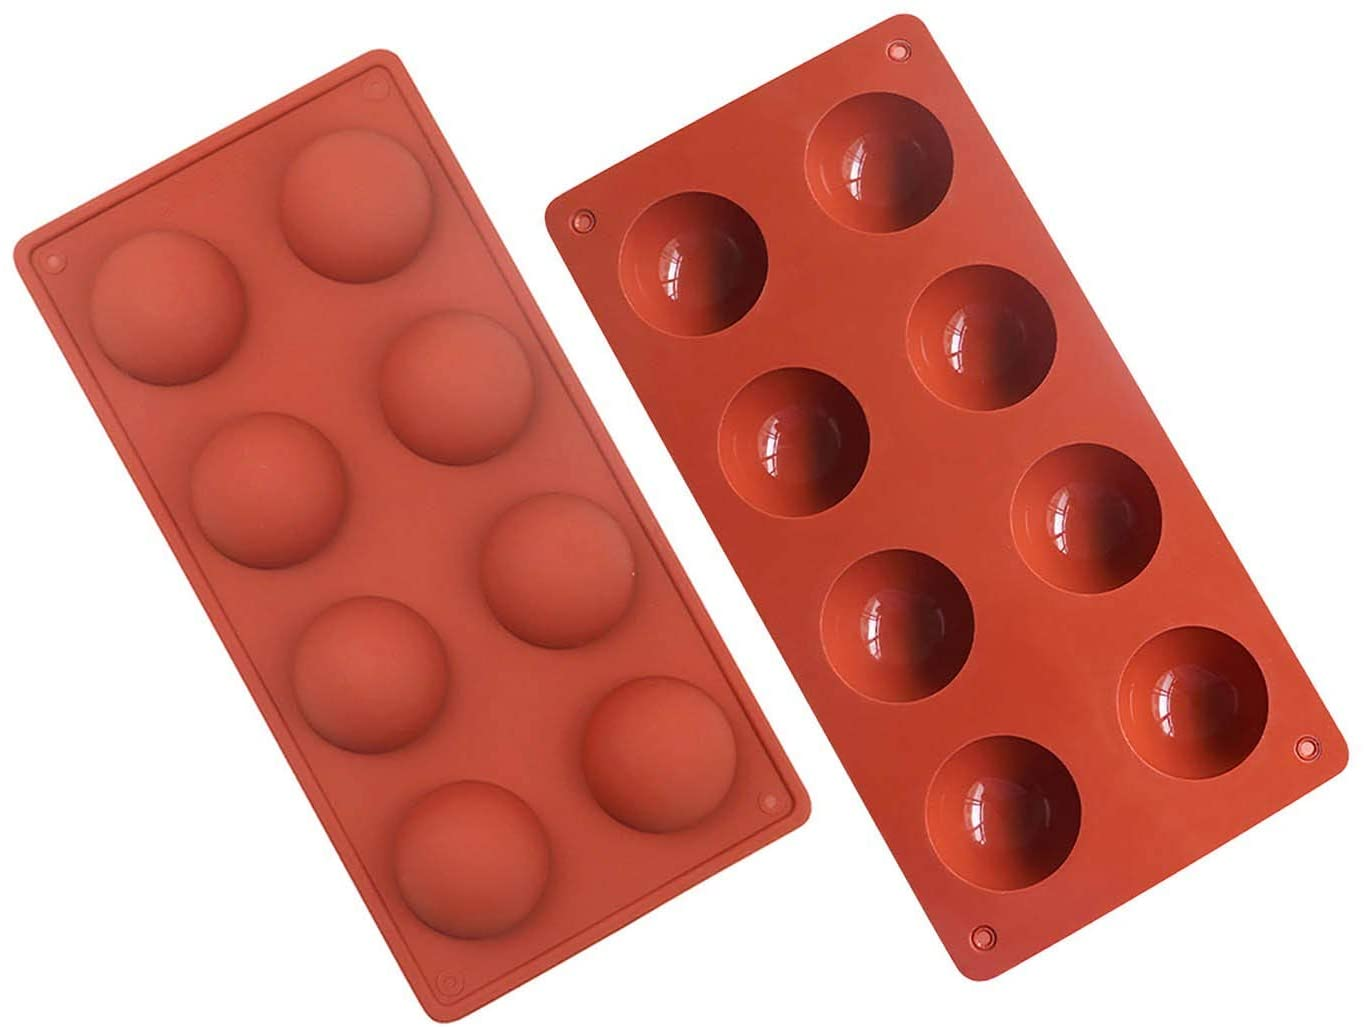 8 Holes Silicone Mold For Chocolate, Cake, Jelly, Pudding, Handmade Soap, Round Shape,Set of 2